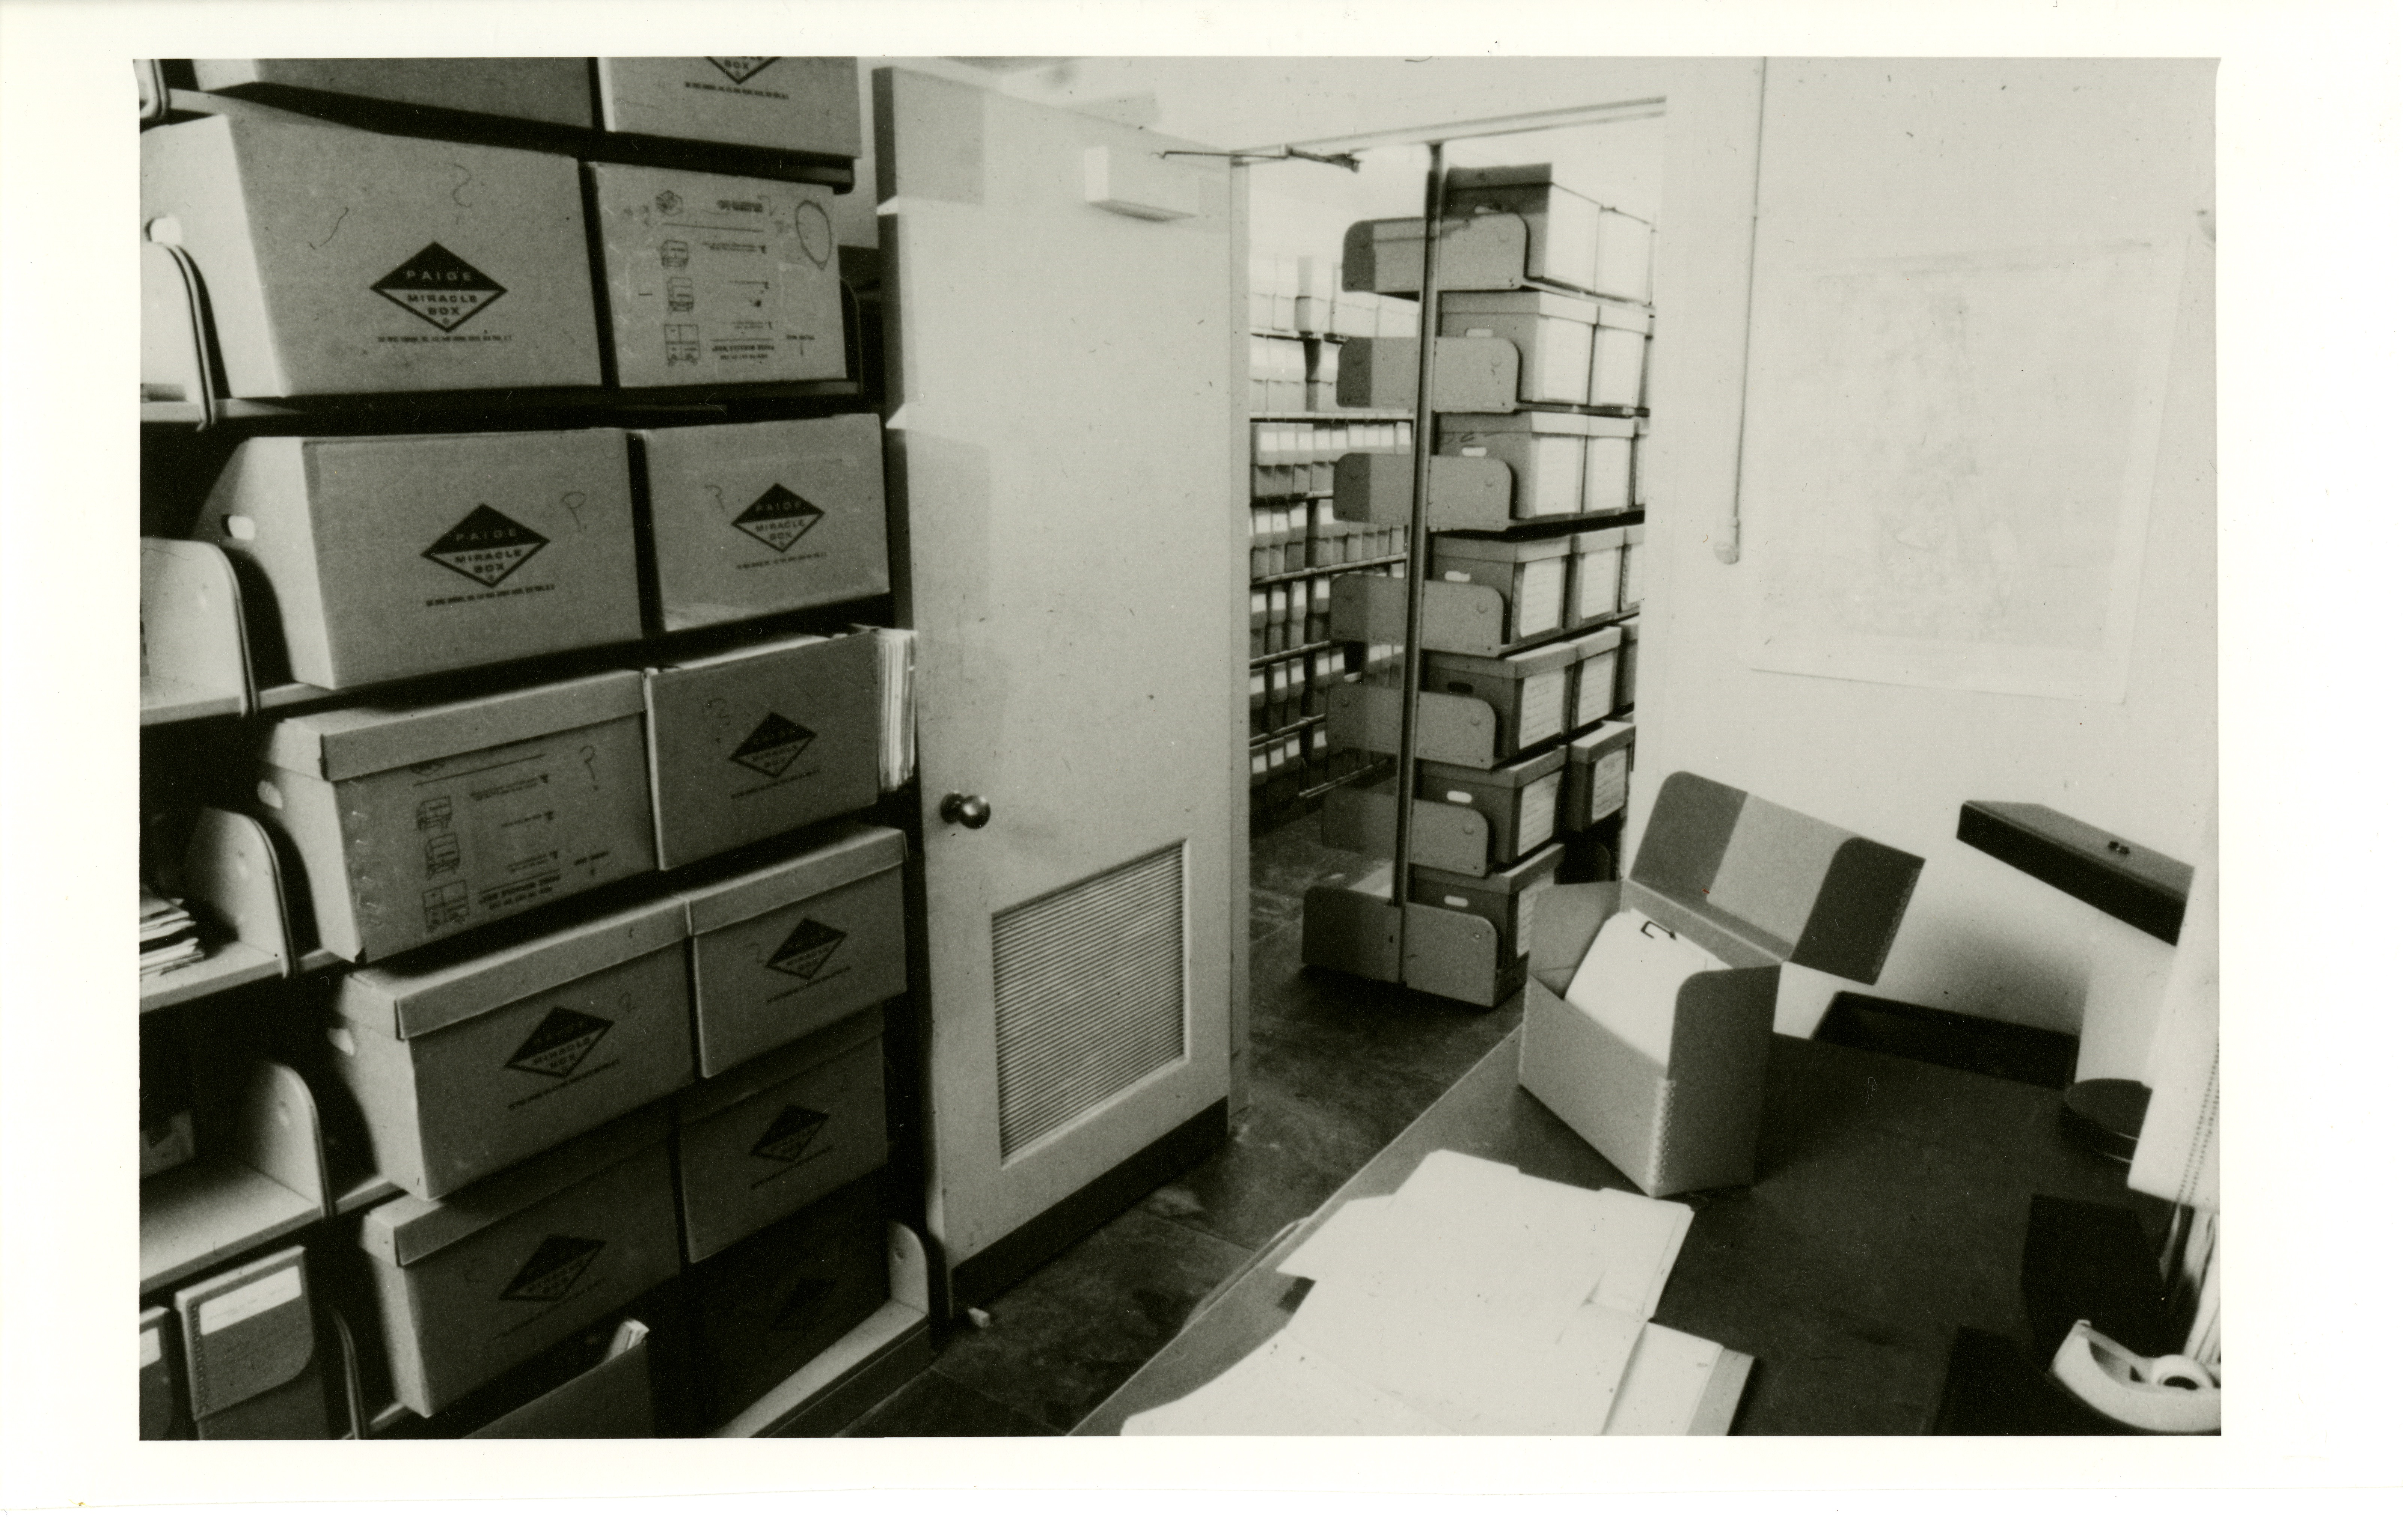 Black and white image of rows of shelves with boxes.